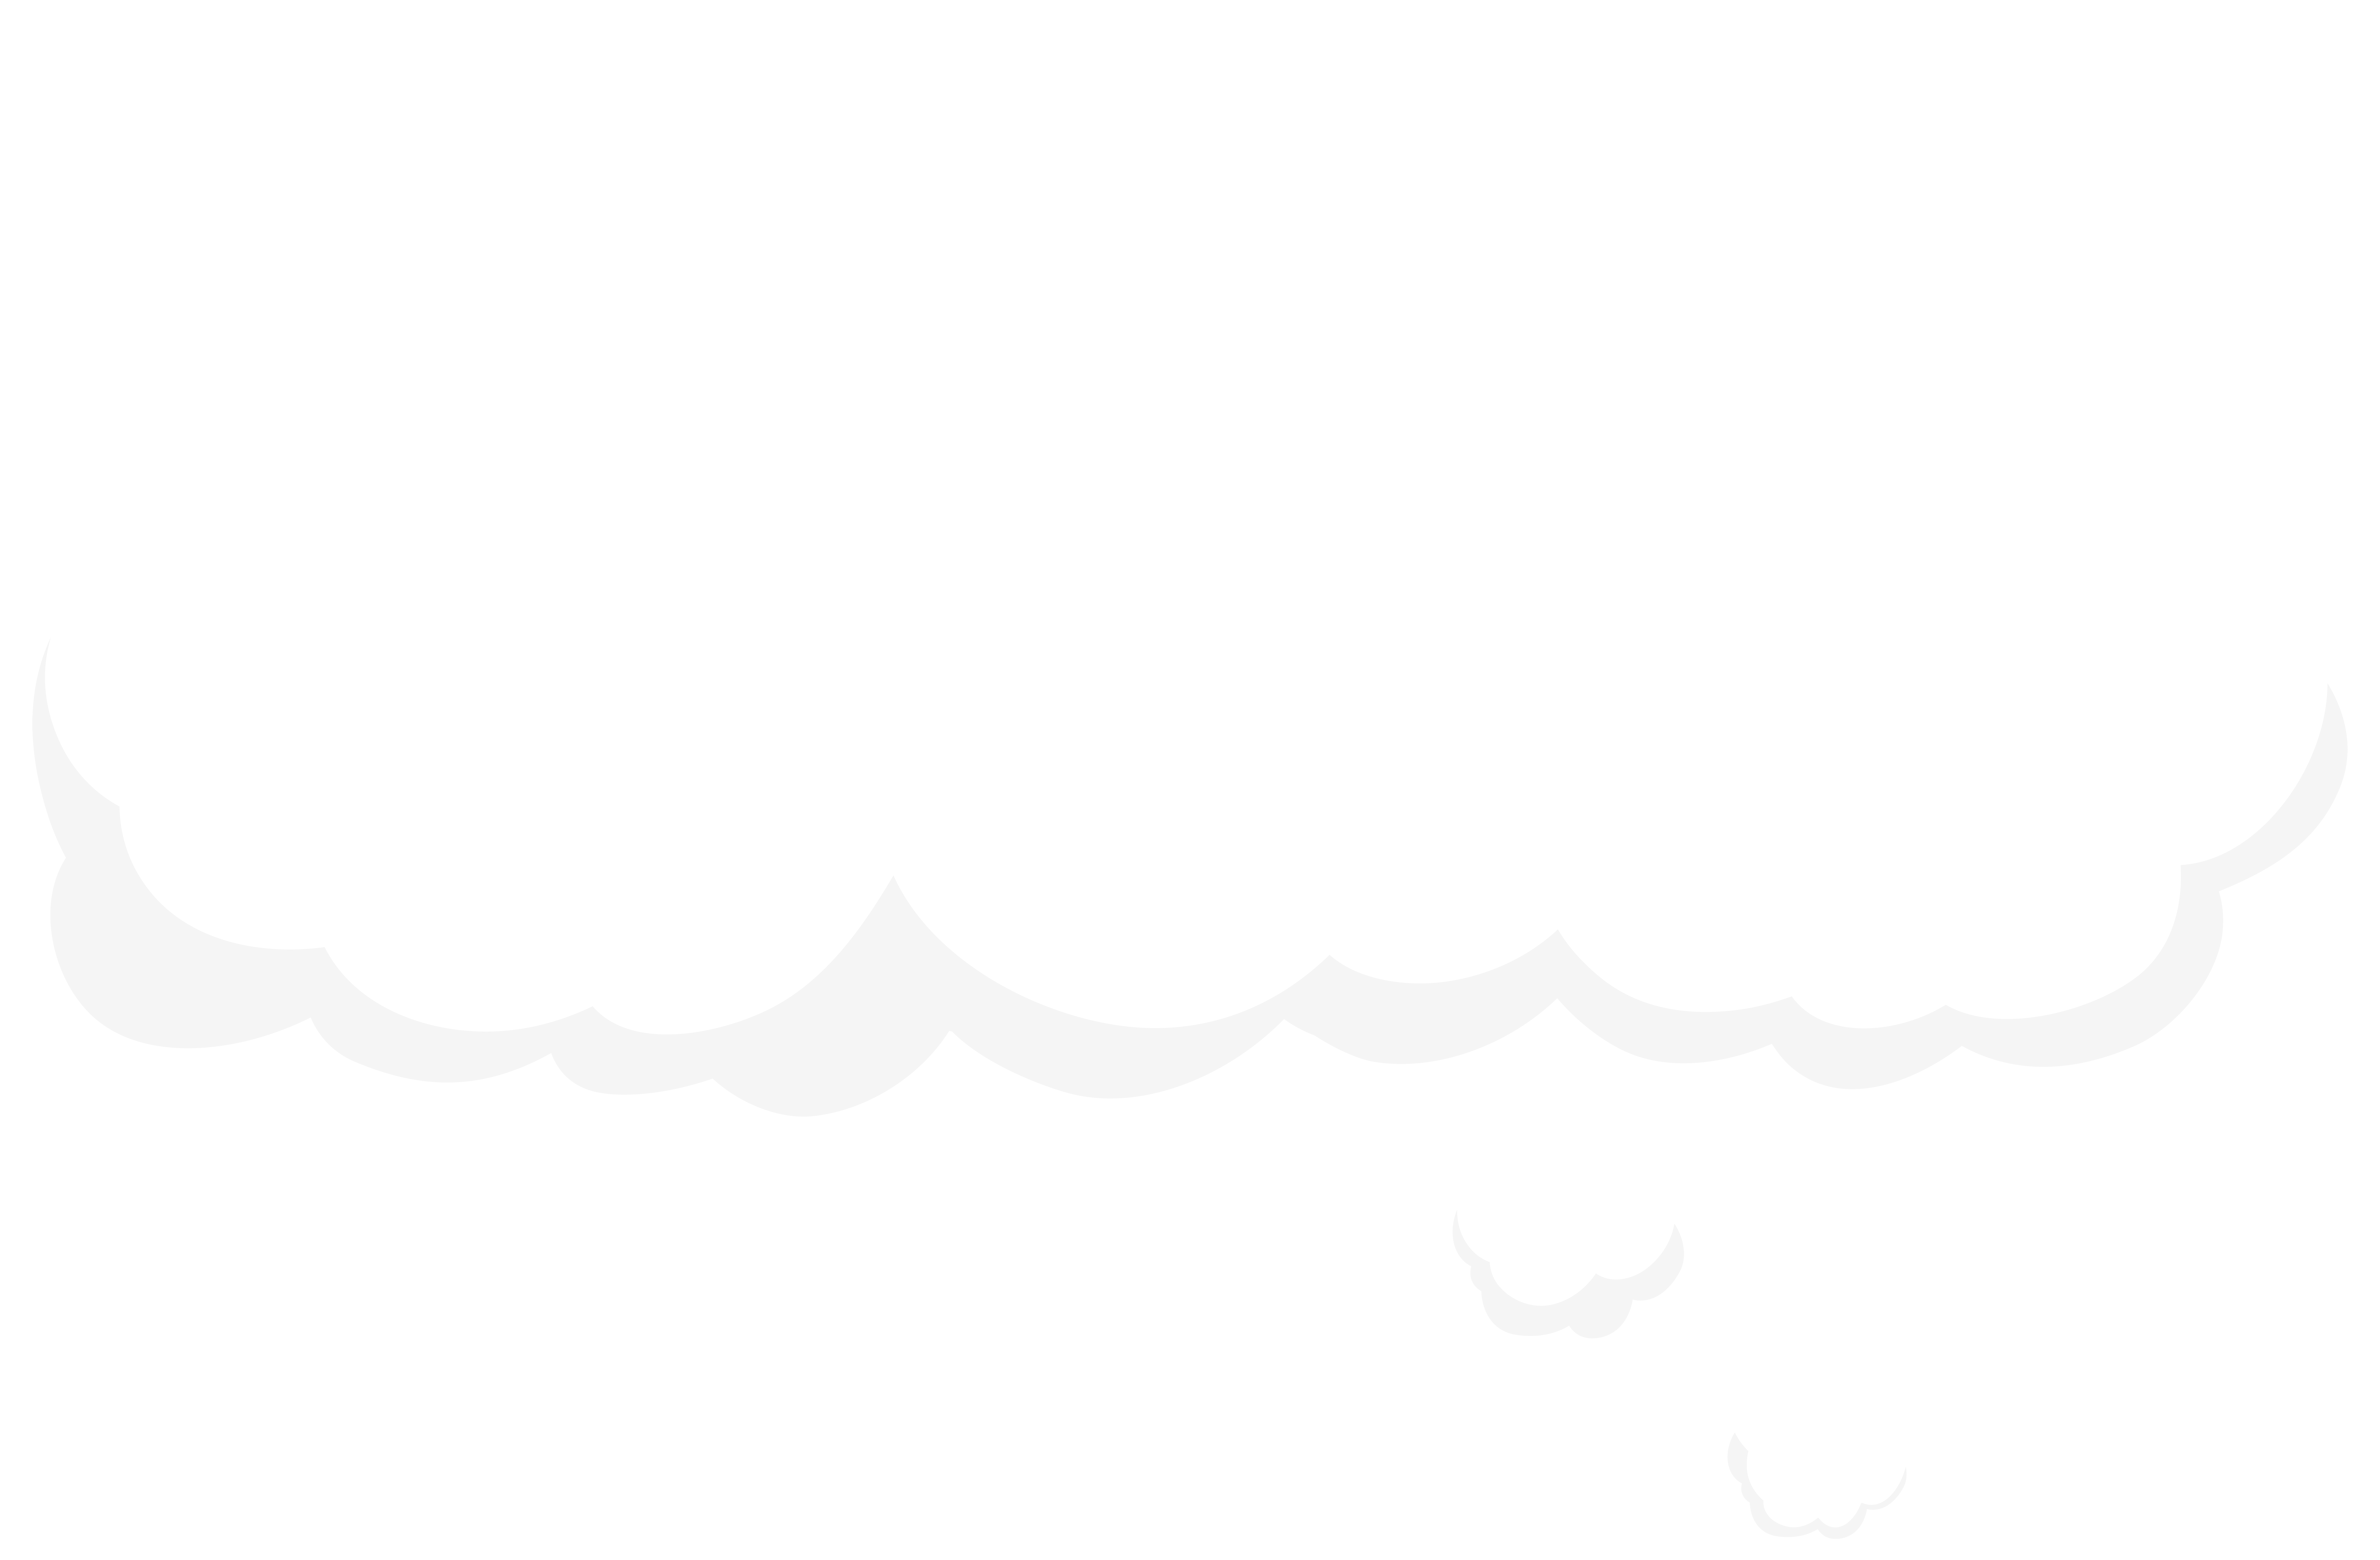 Cloud png clipart. Bubble speech clip art